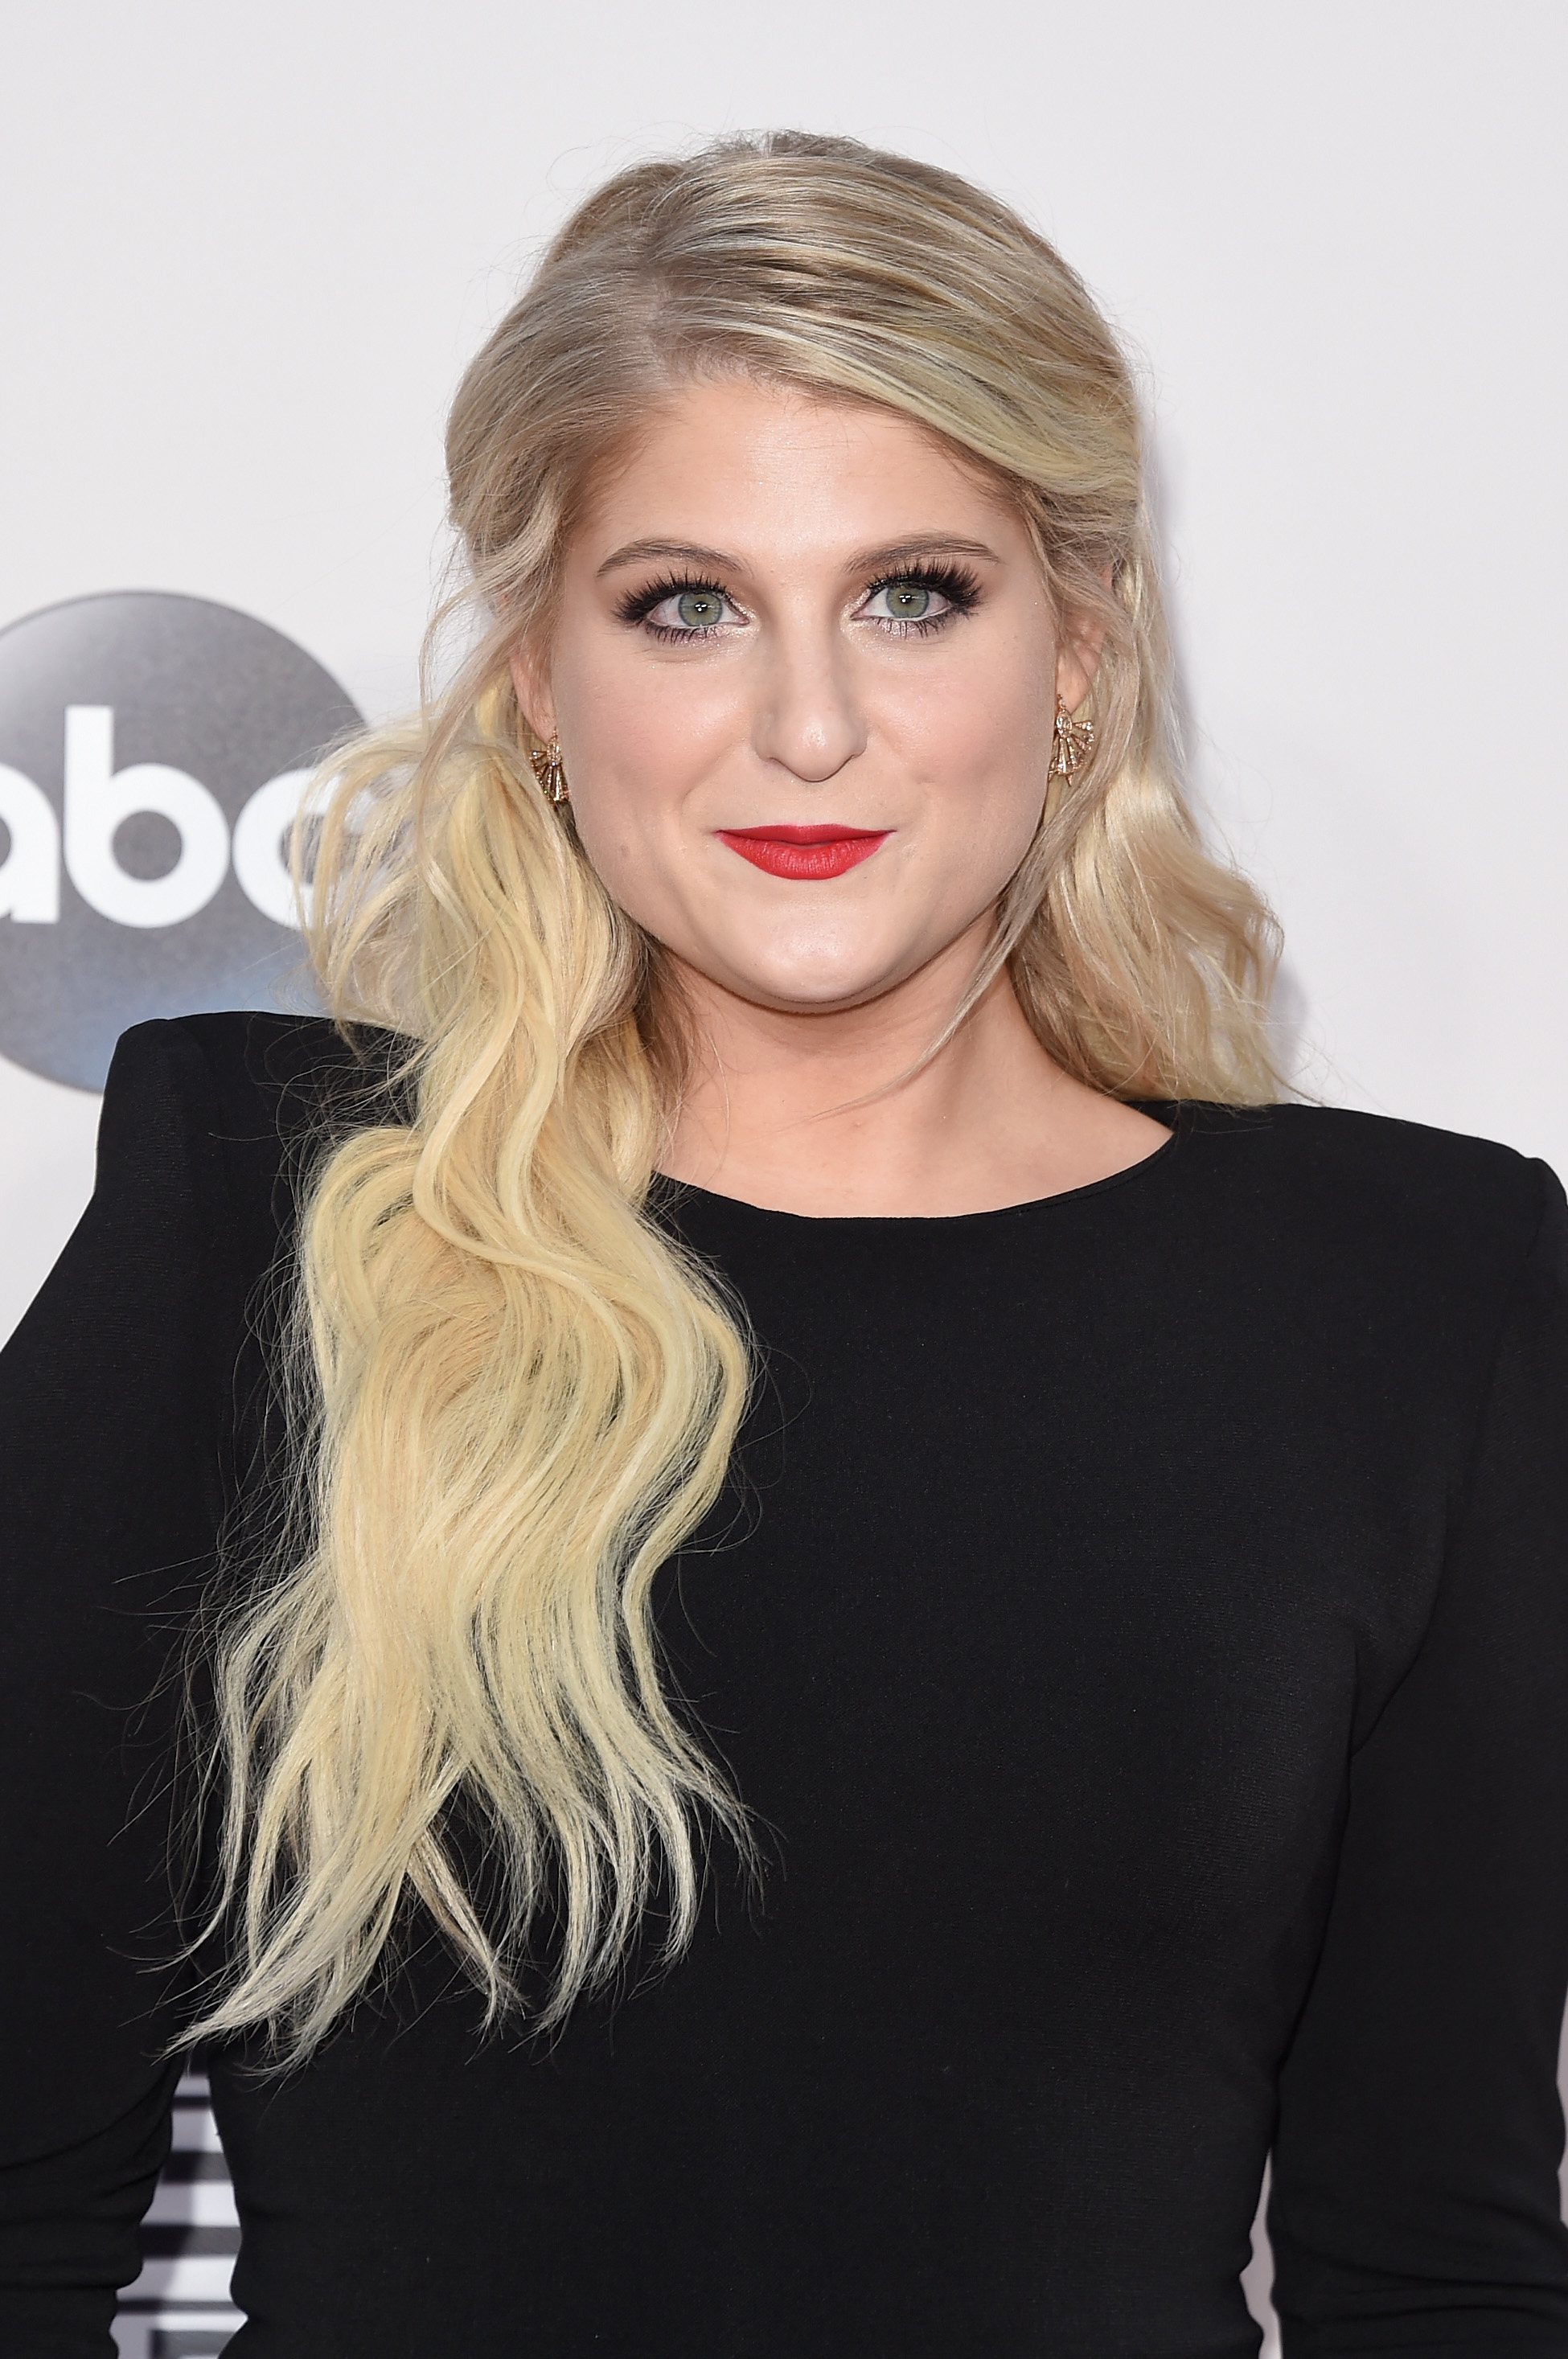 A meghan trainor eye makeup tutorial for everyone no matter what a meghan trainor eye makeup tutorial for everyone no matter what your style videos publicscrutiny